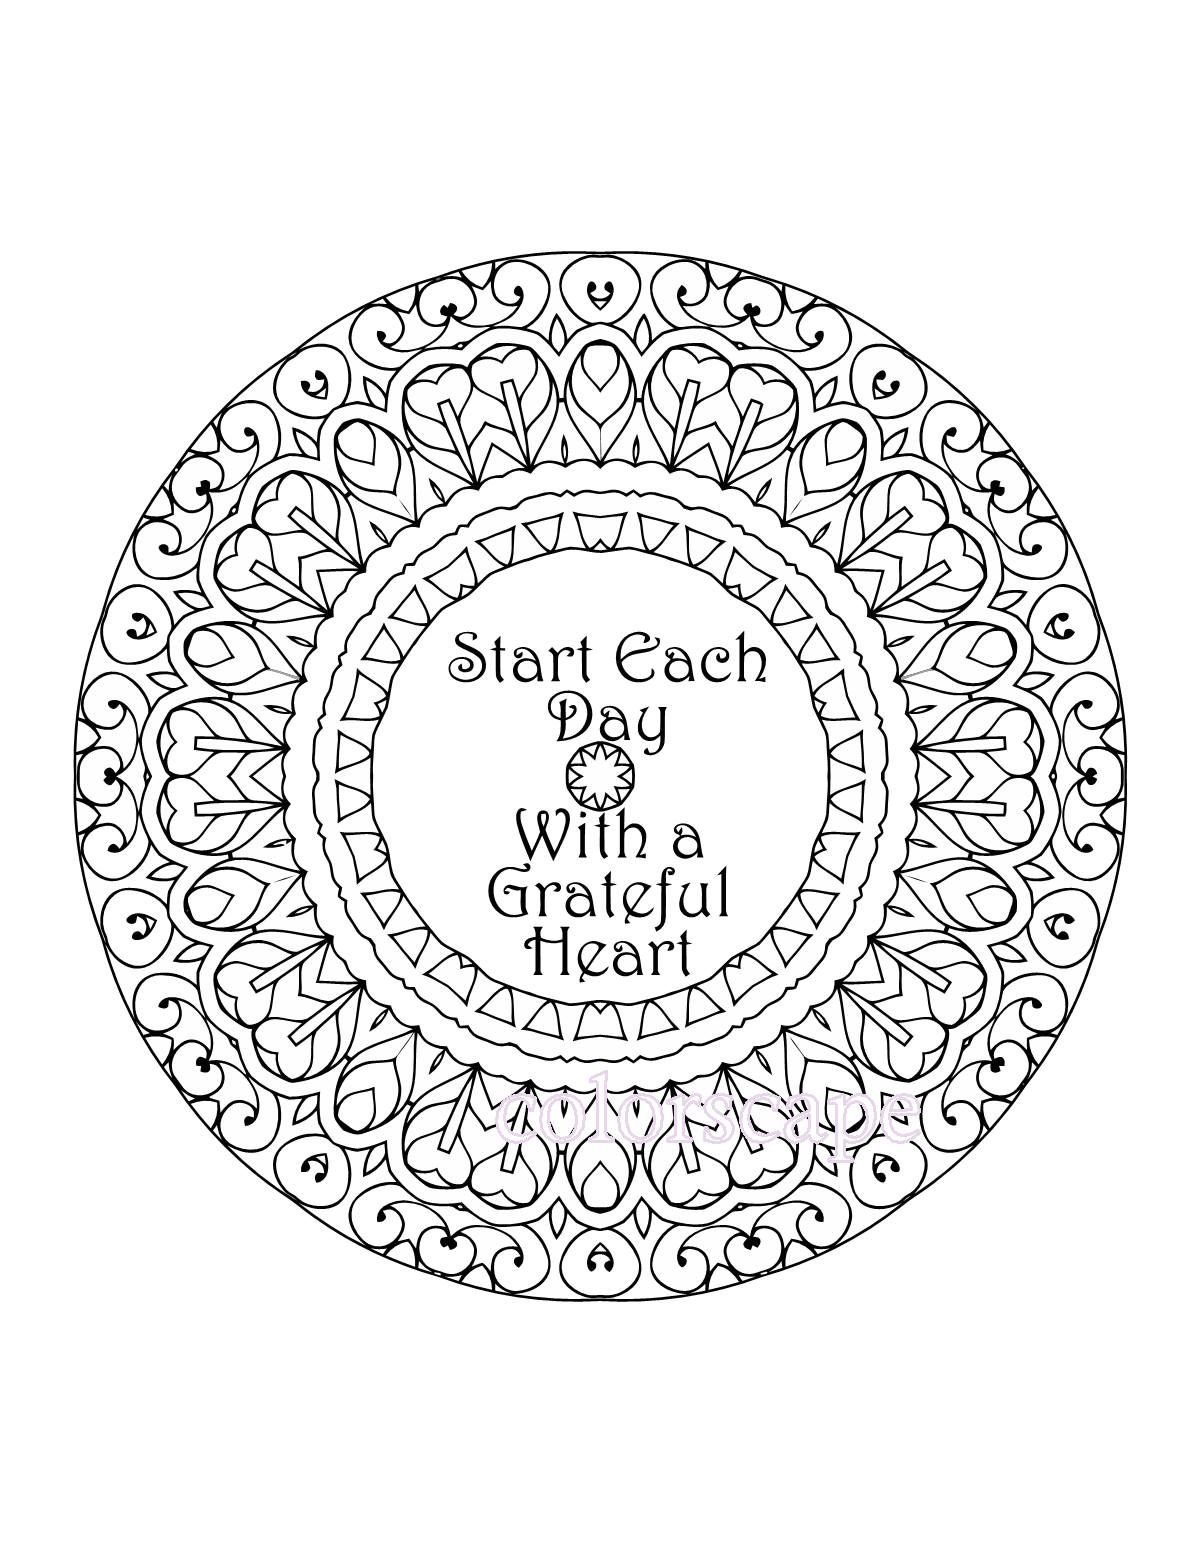 Inspirational coloring pages printable - Inspirational Coloring Page Printable Grateful Heart Inspirational Quote Mandala Digital Download